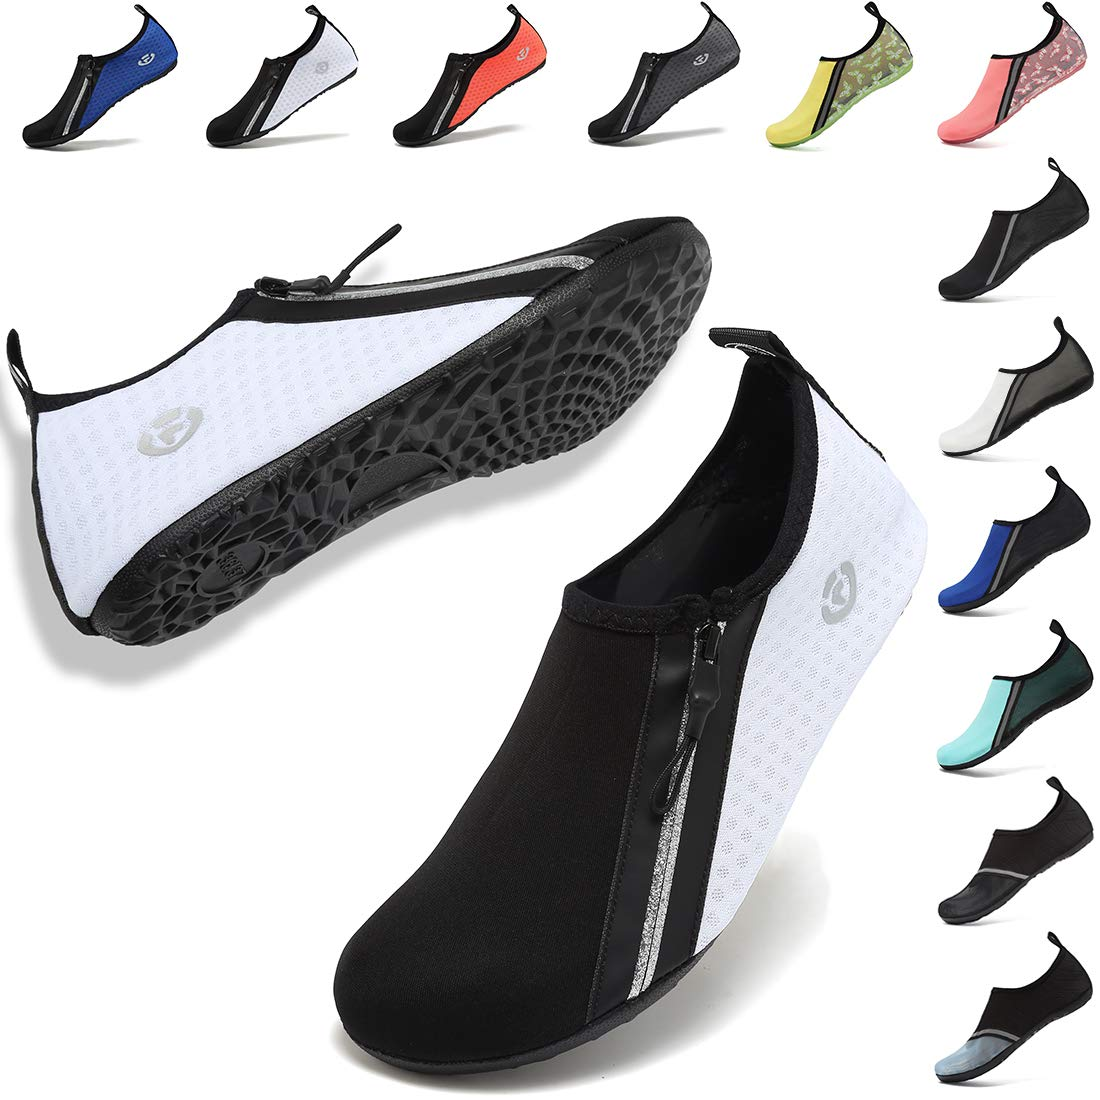 VIFUUR Womens Mens Water Shoes Adjustable Aqua Socks for Outdoor Swimming Beach Surfing Zipper